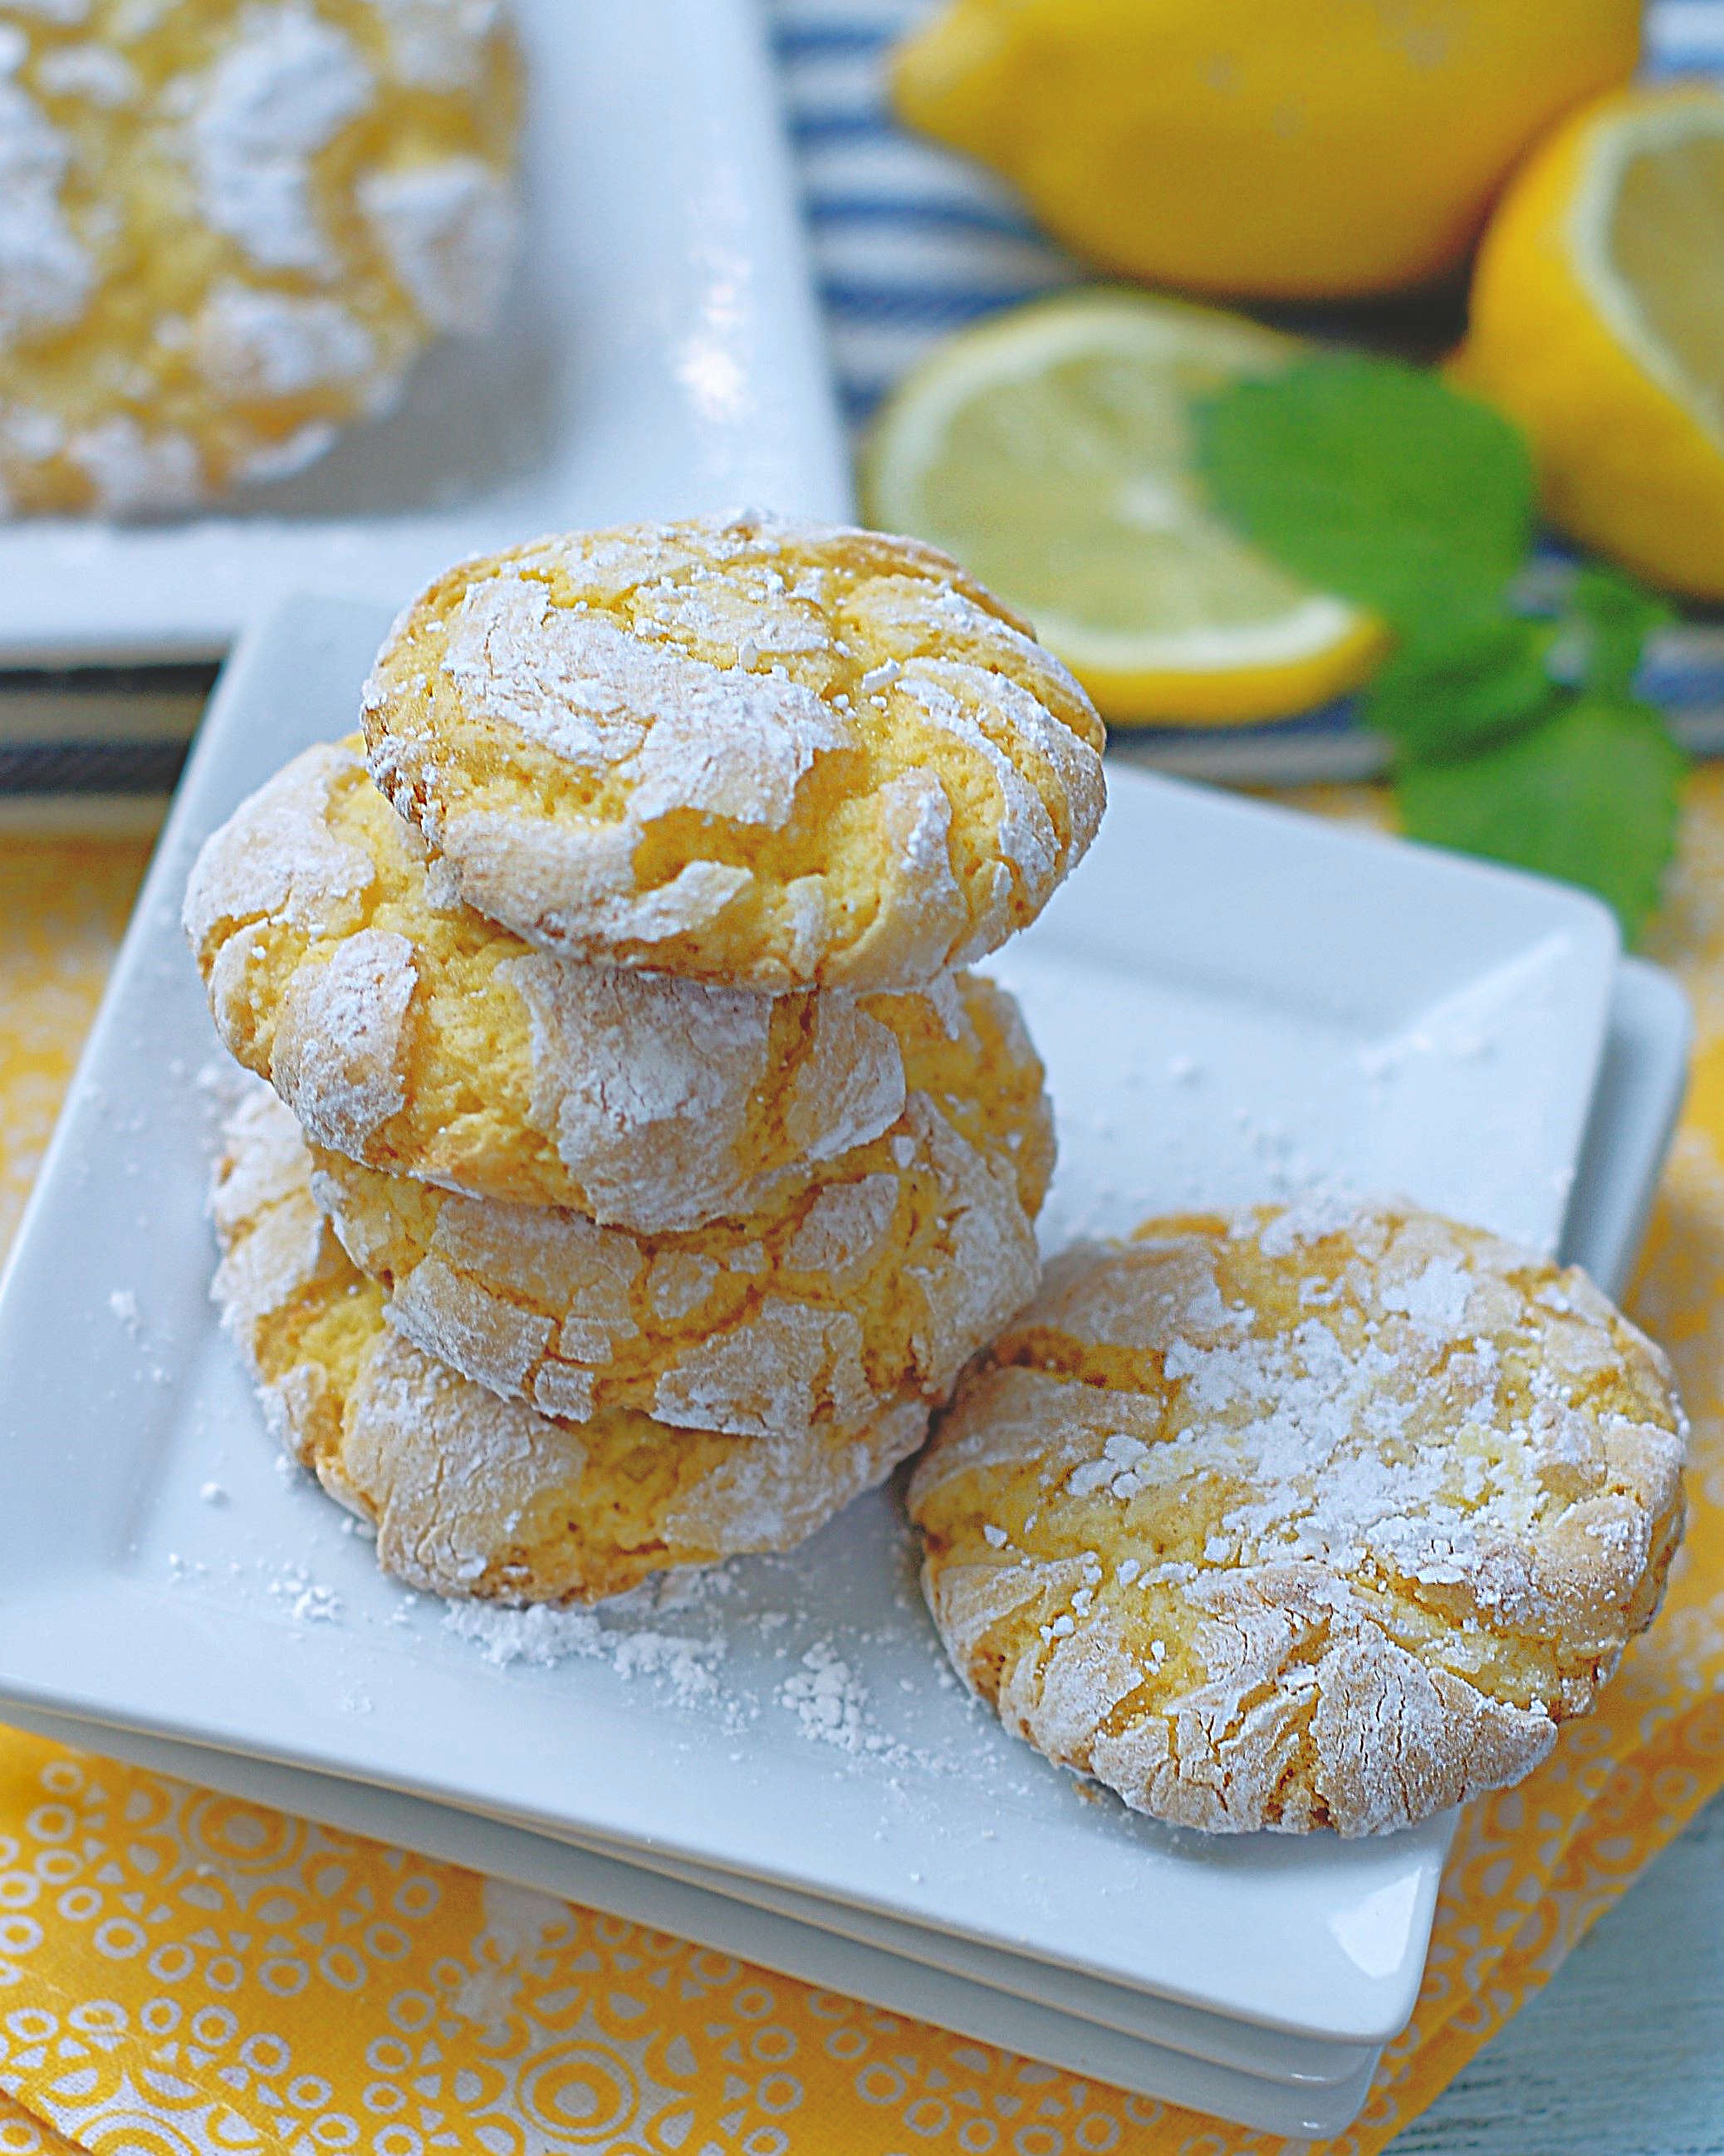 A stack of lemon crinkle cookies with powdered sugar are tart and sweet.